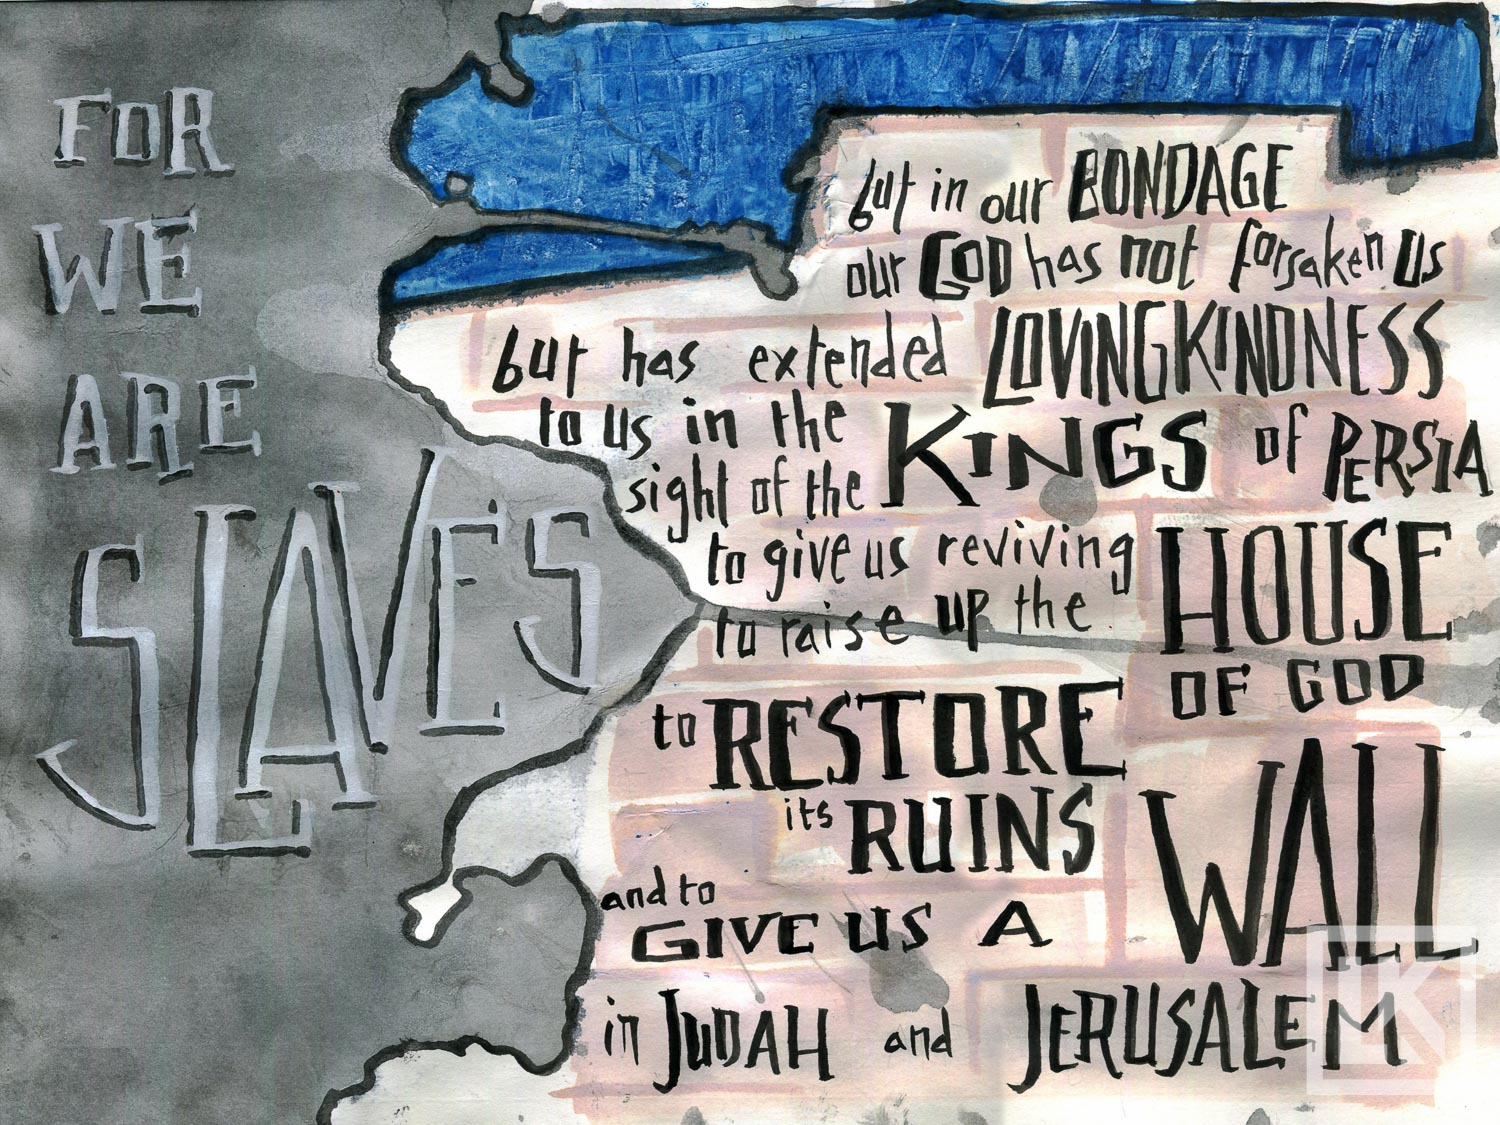 Overview of Ezra: Israel returns to her foundations